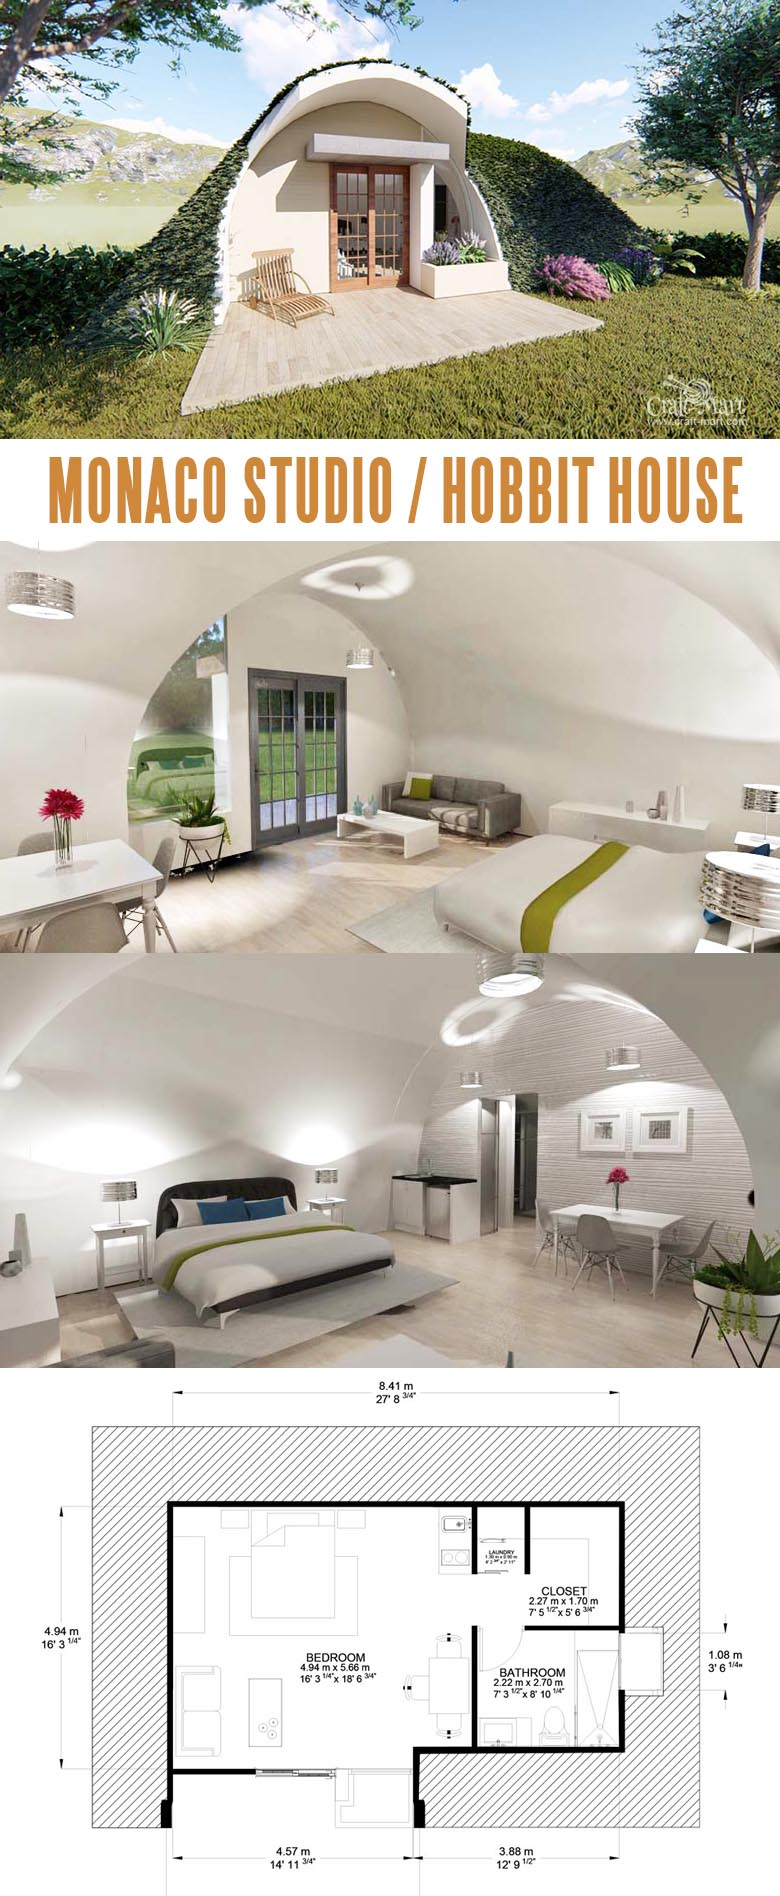 Monaco Studio (Tiny Hobbit House). Modular units can be interconnected creating luxury Hobbit estates.